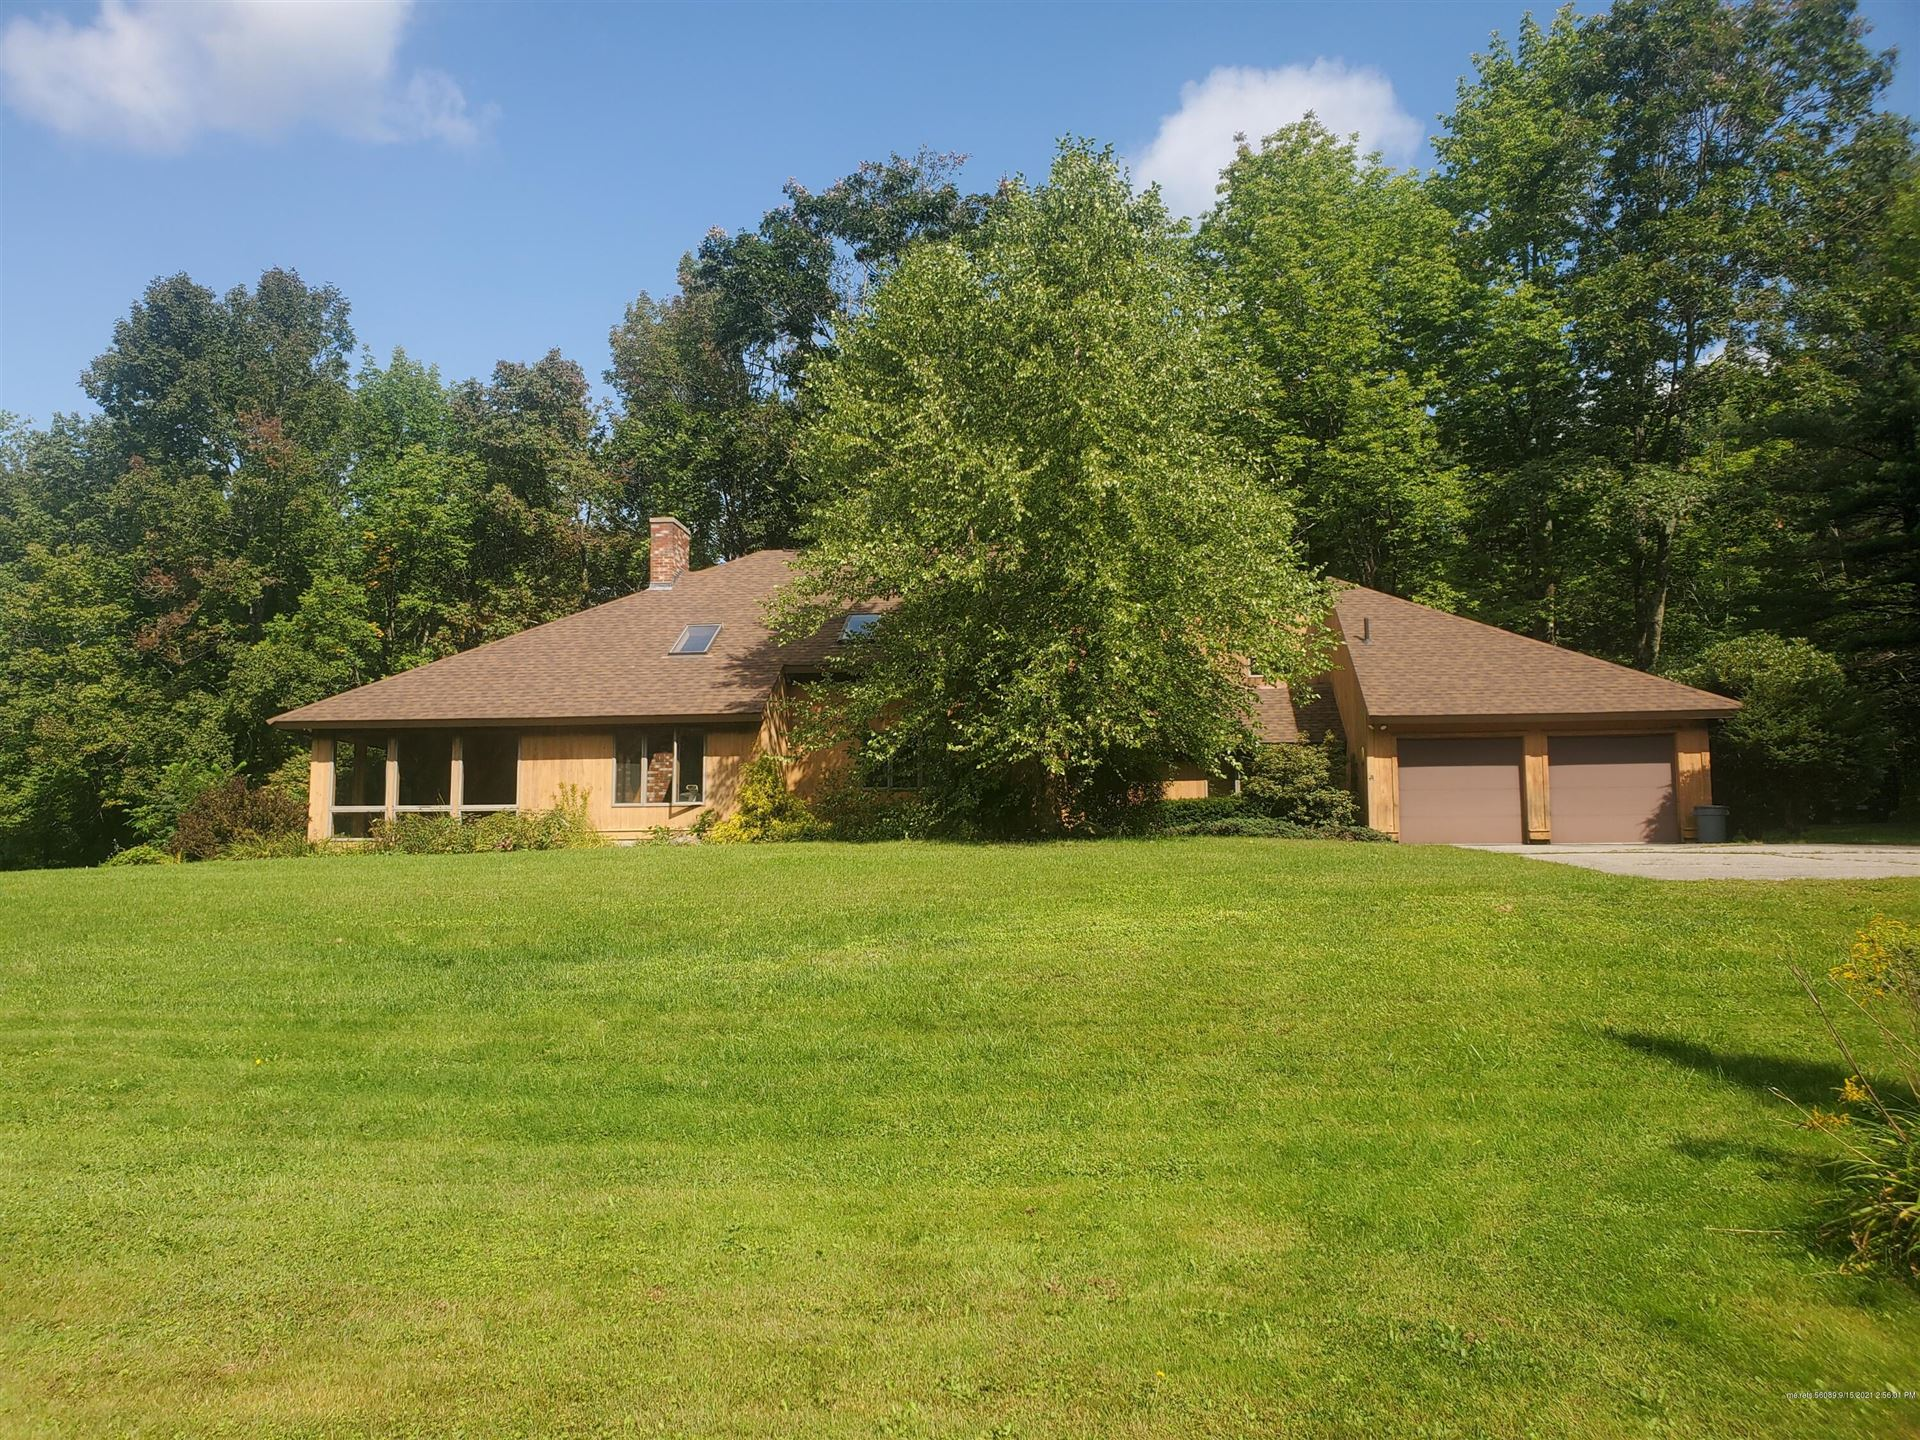 Photo of 110 Readfield Road, Manchester, ME 04351 (MLS # 1508747)